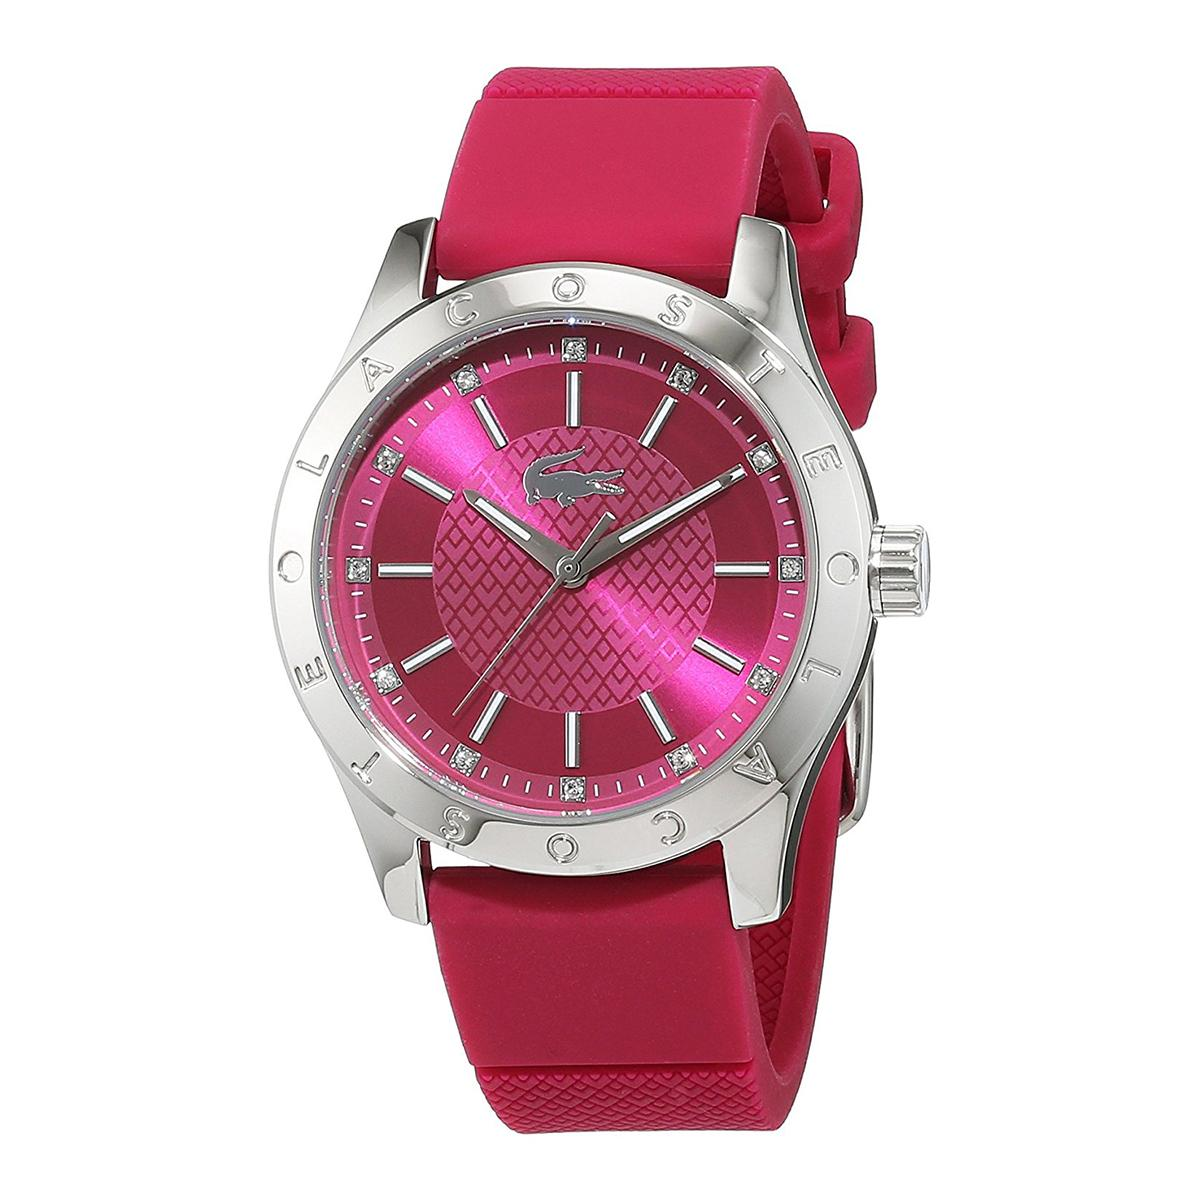 Discount Lacoste Watch Charlotte Pink Stainless Steel Case Silicone Strap Ladies 2000976 Lacoste On Singapore